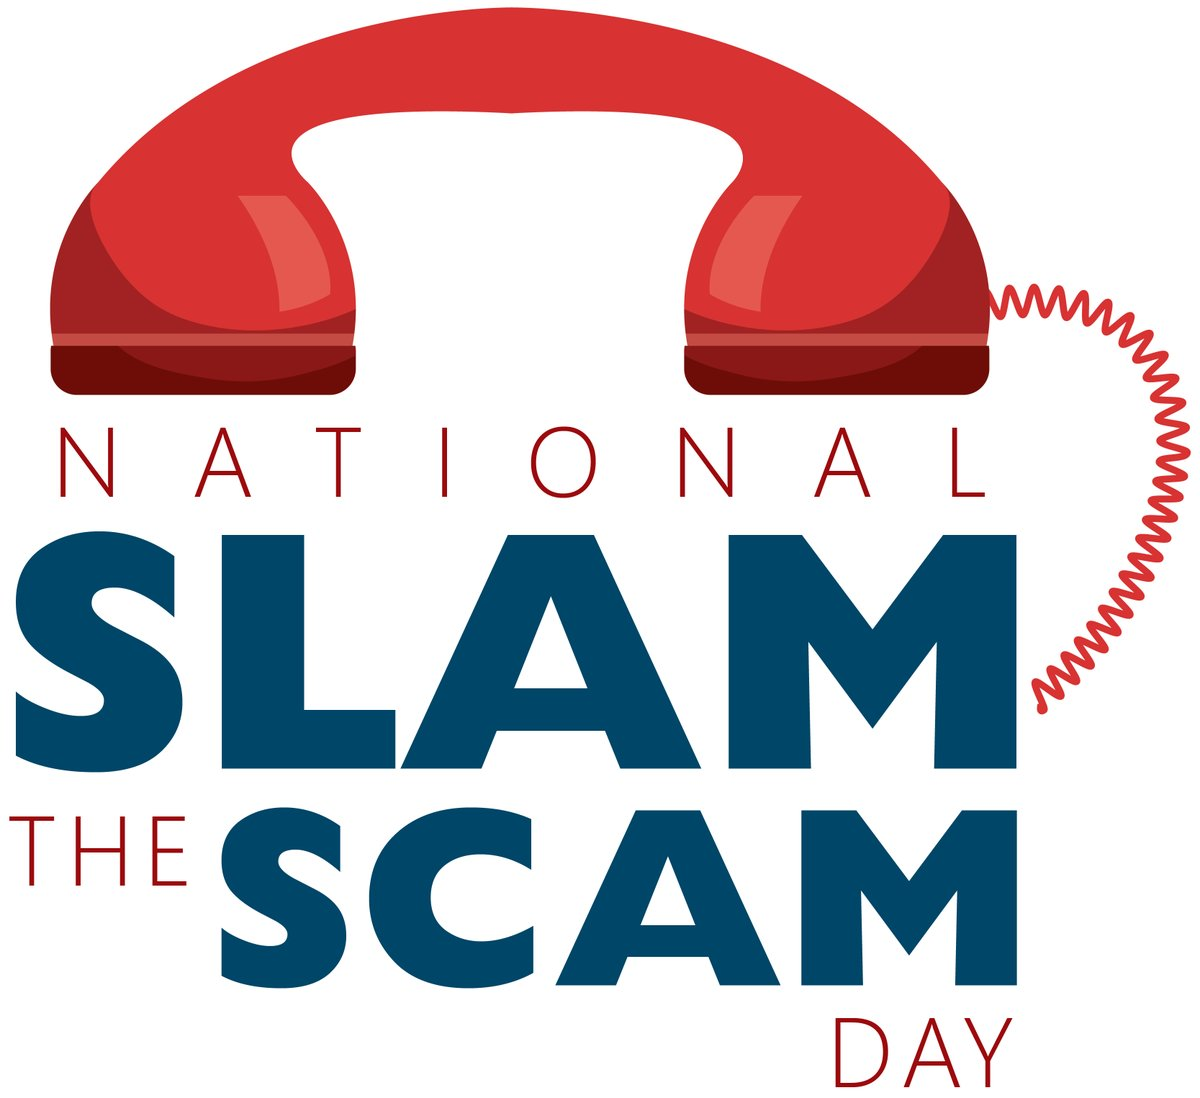 #HappeningNow : Join @USAGov for a twitter chat to learn how to combat fraud and scams. #SlamTheScamDay #NCPW2021